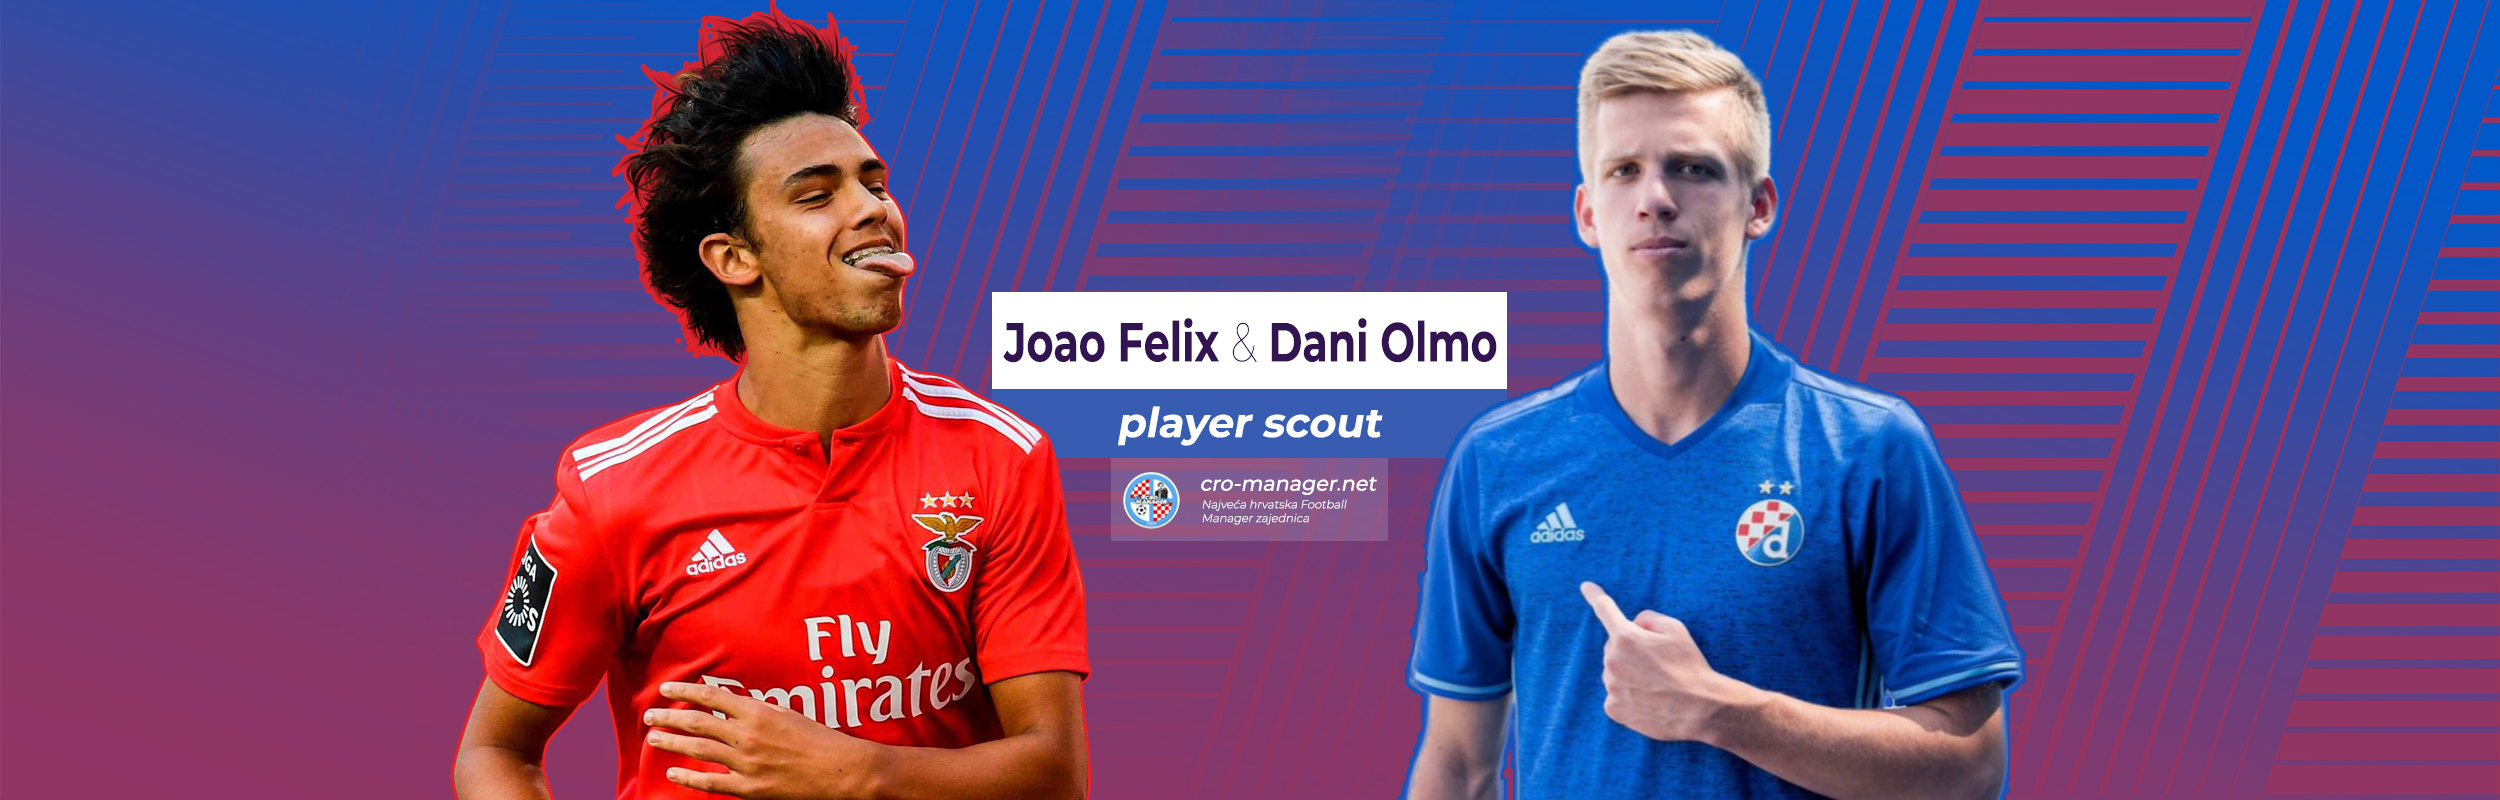 Player scout: Dani Olmo vs Joao Felix